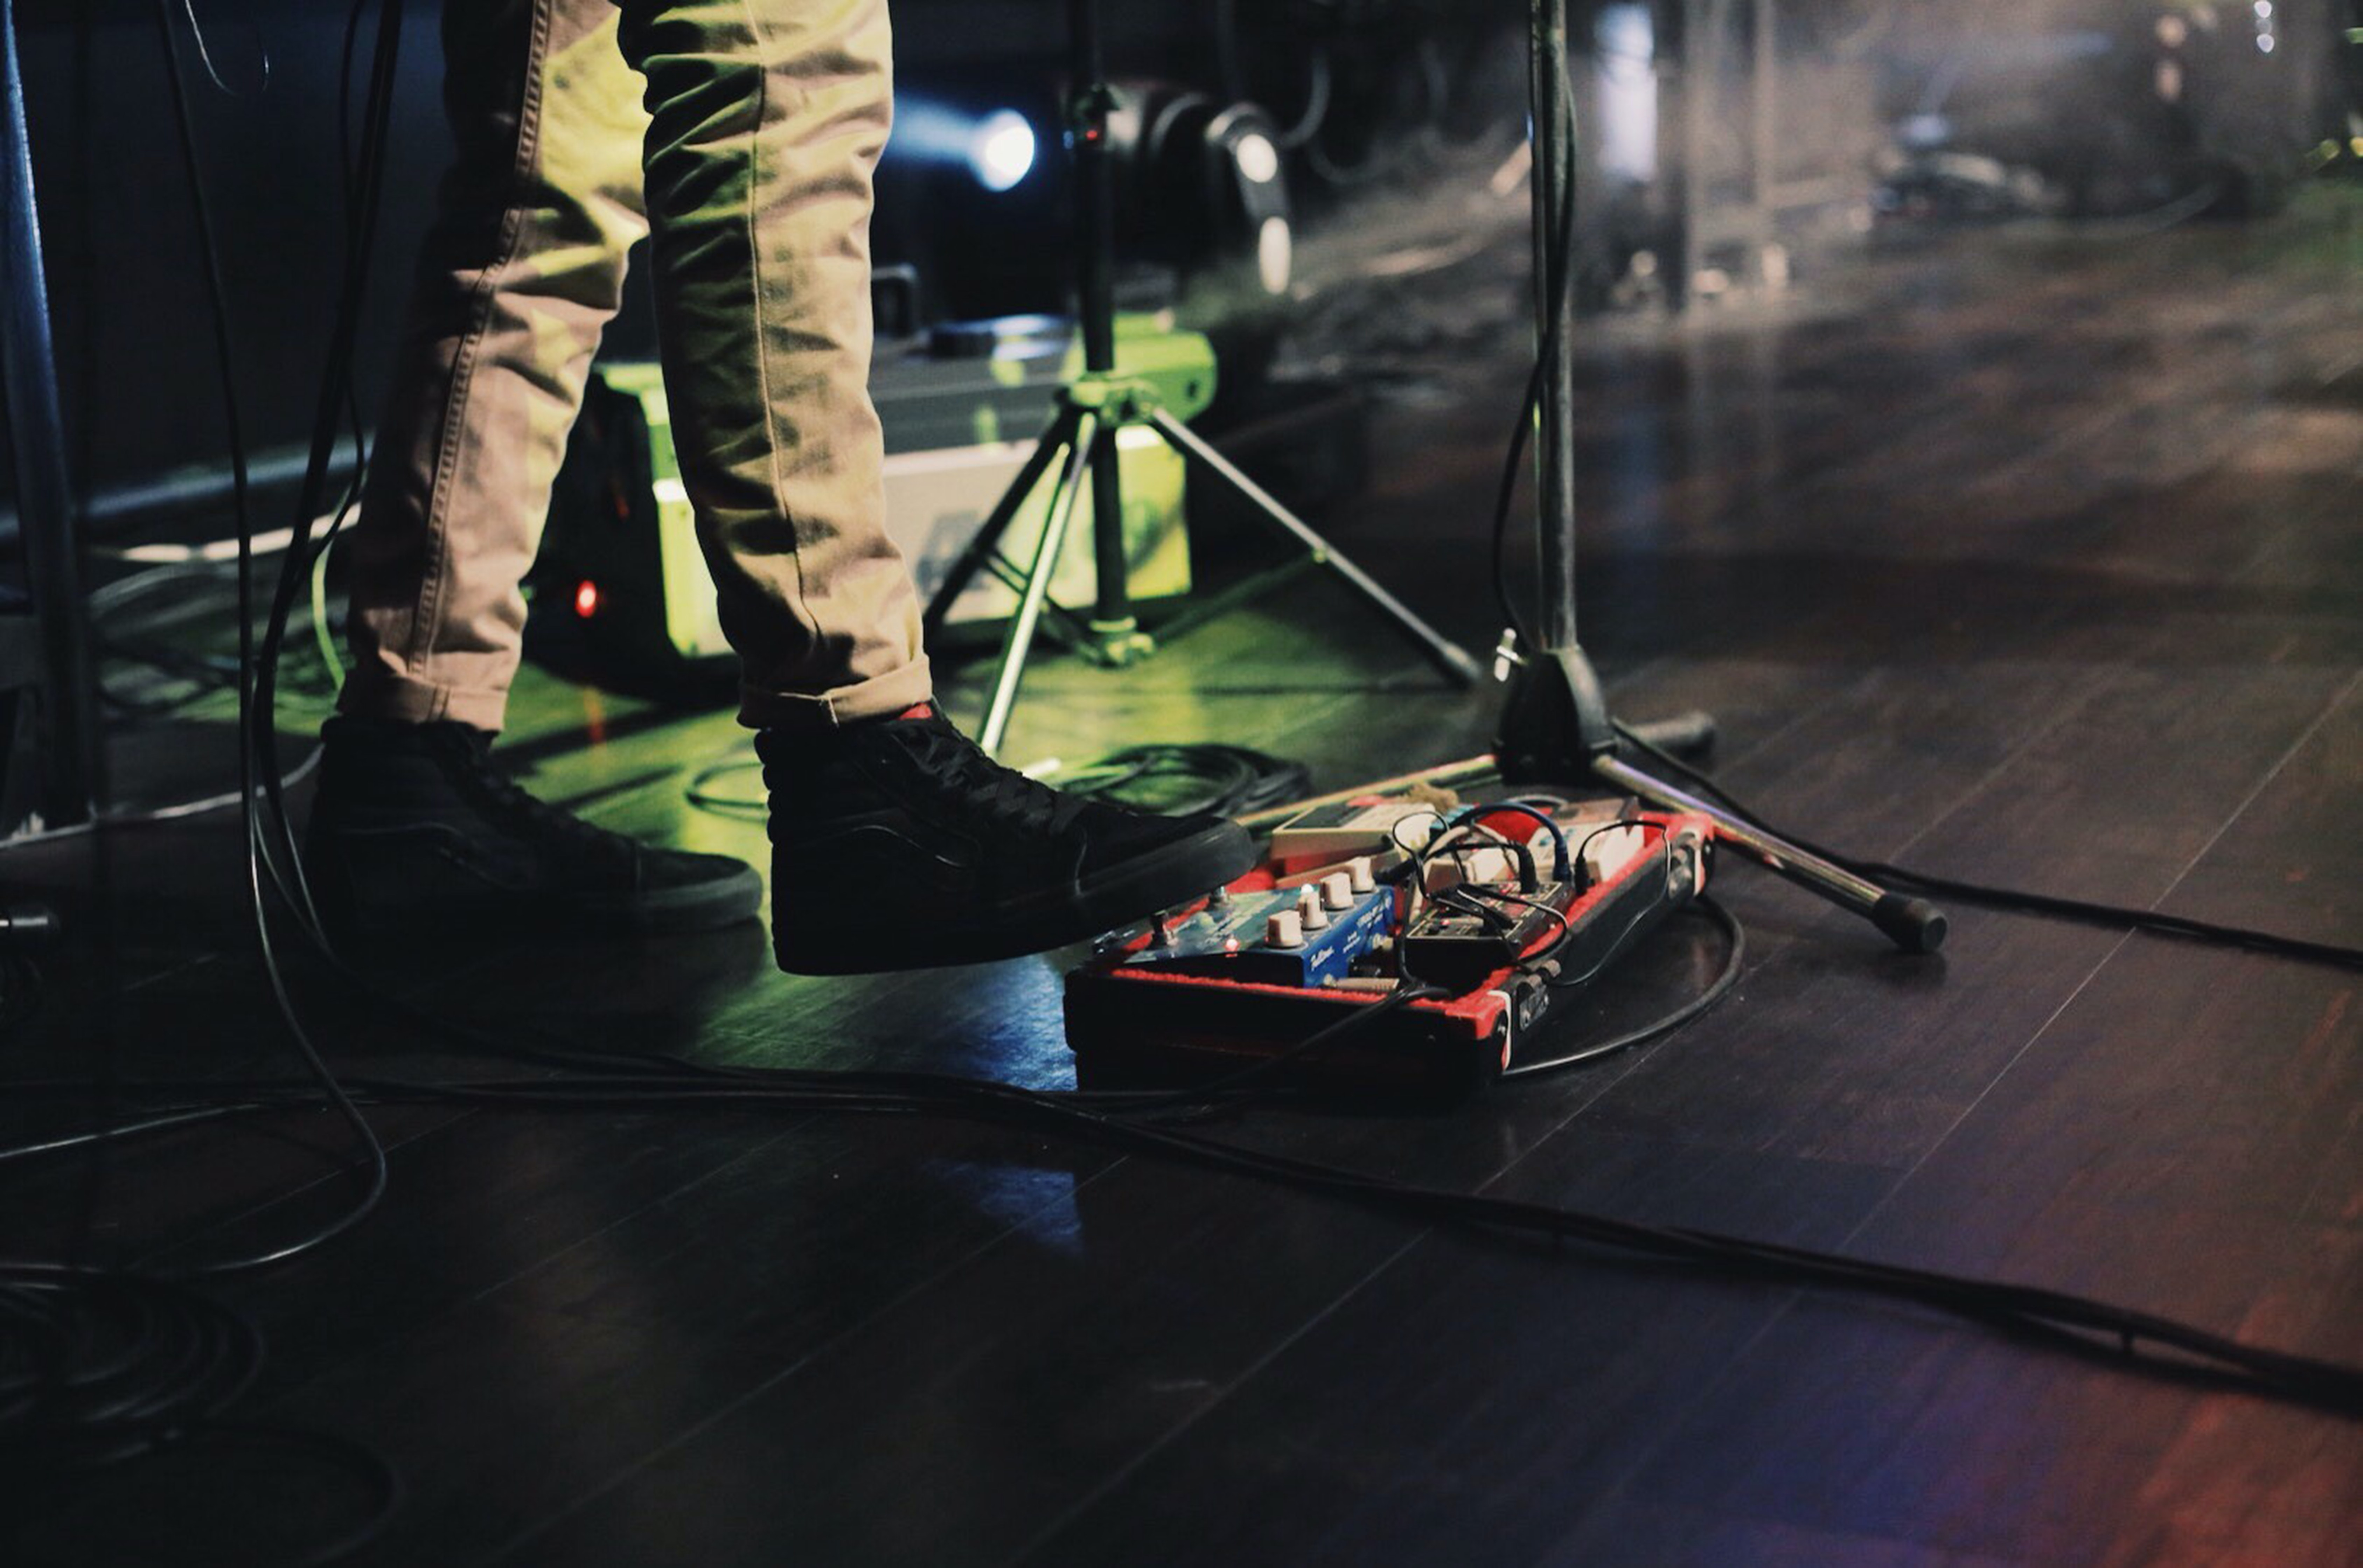 A musician on stage flipping a switch with his foot